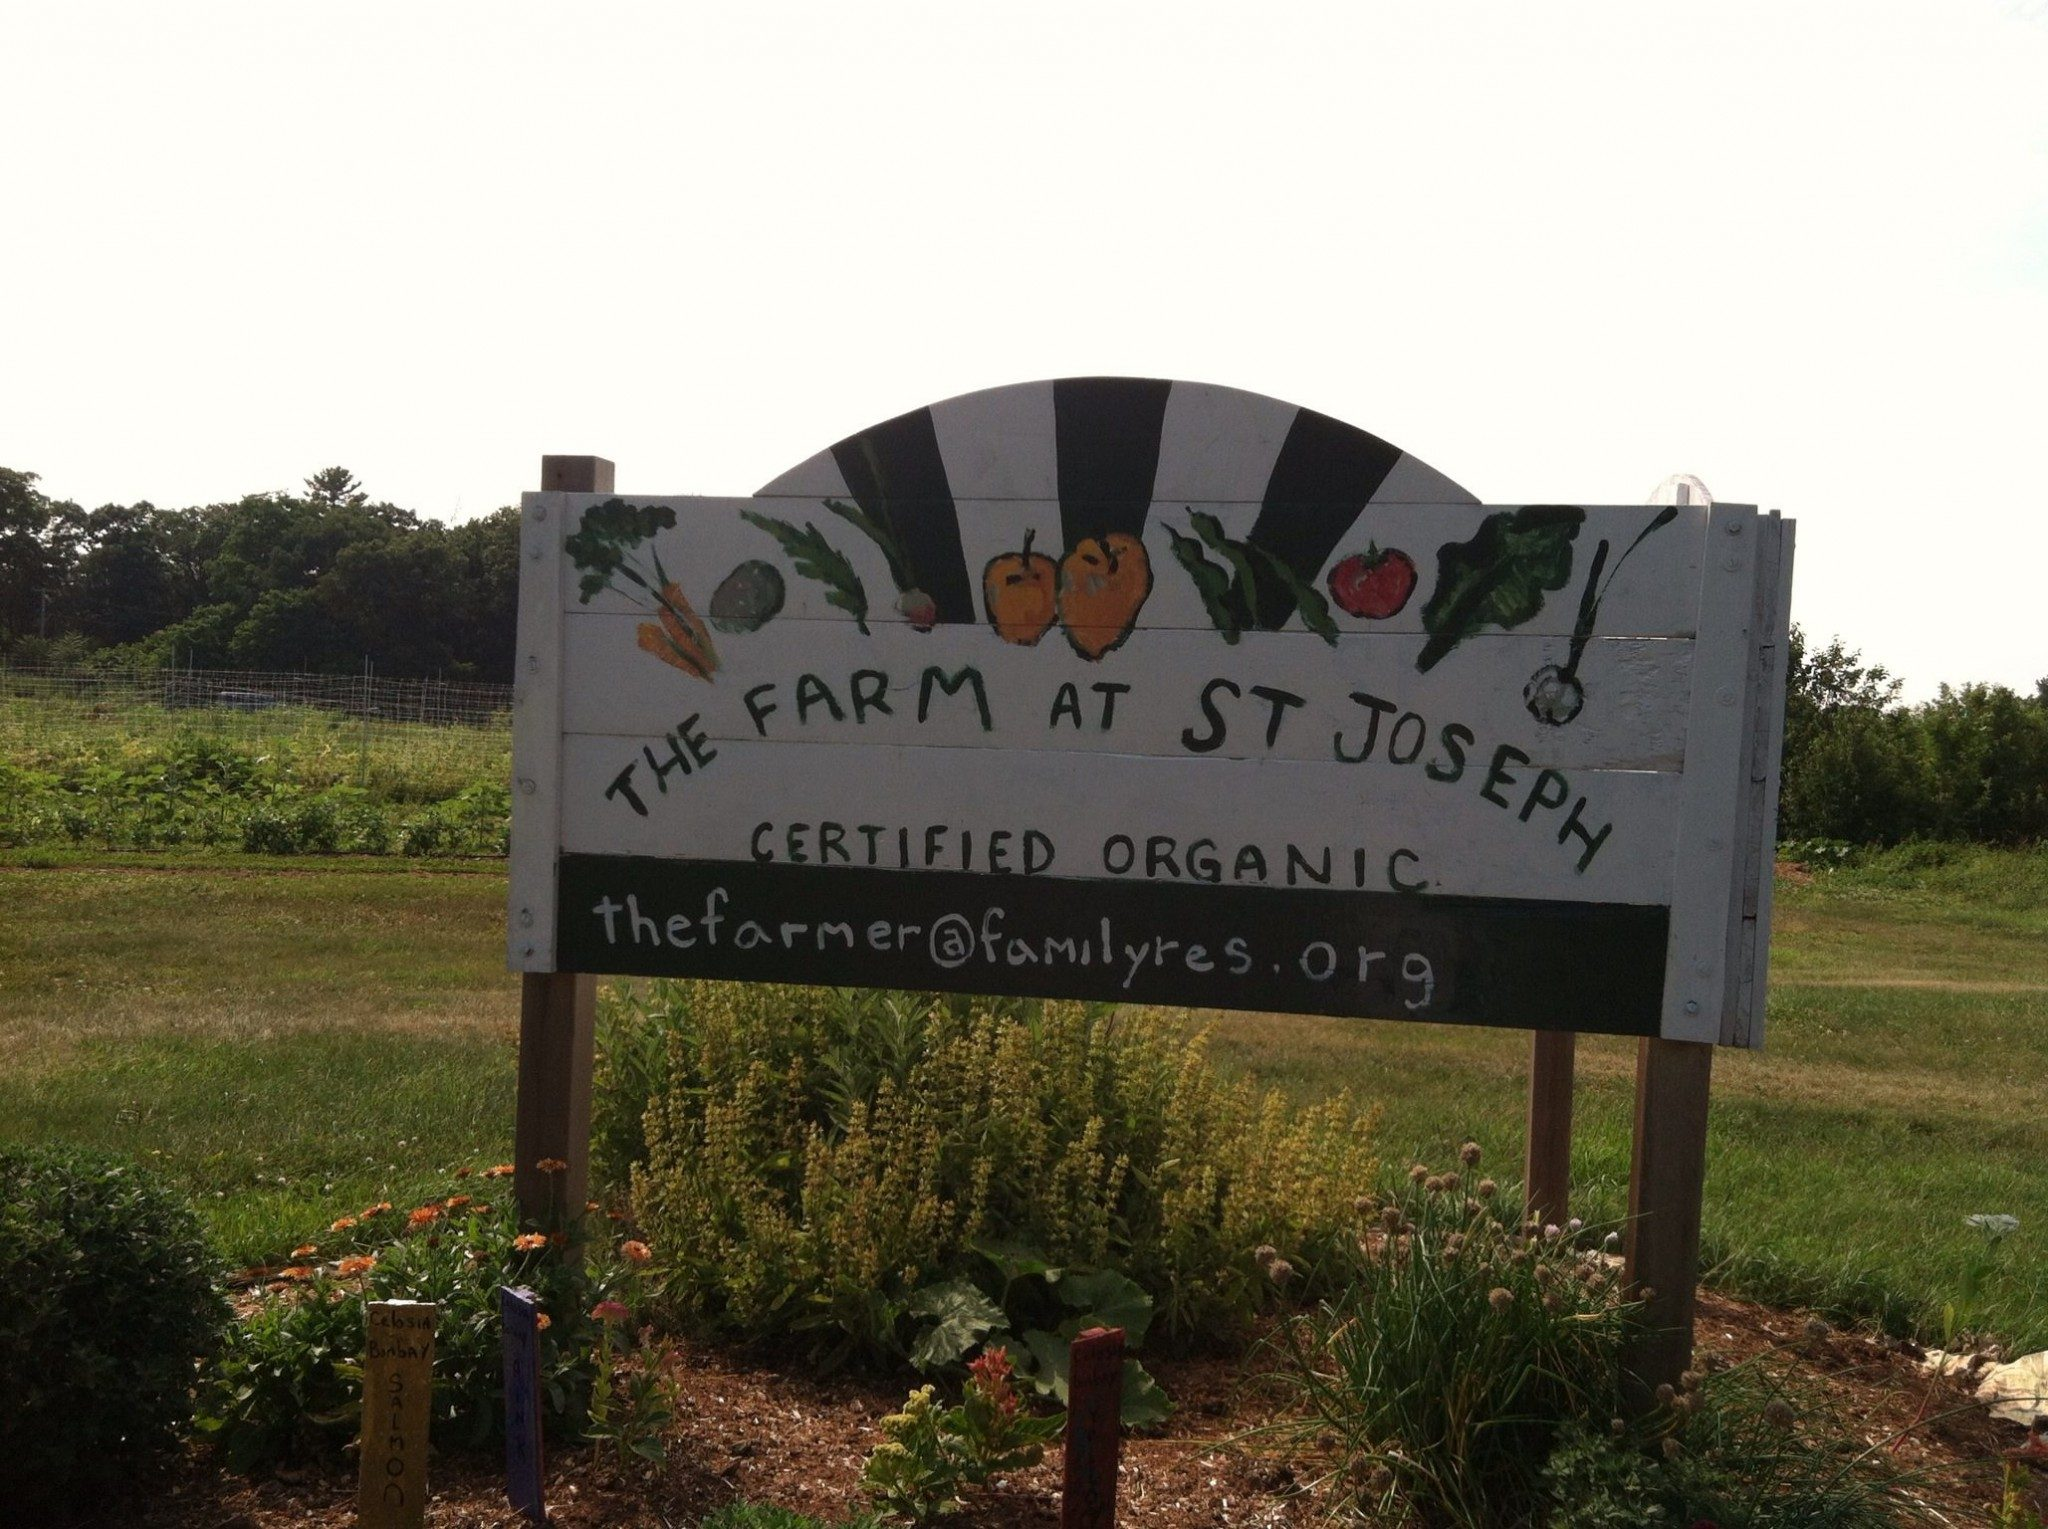 The Farm at Saint Joseph